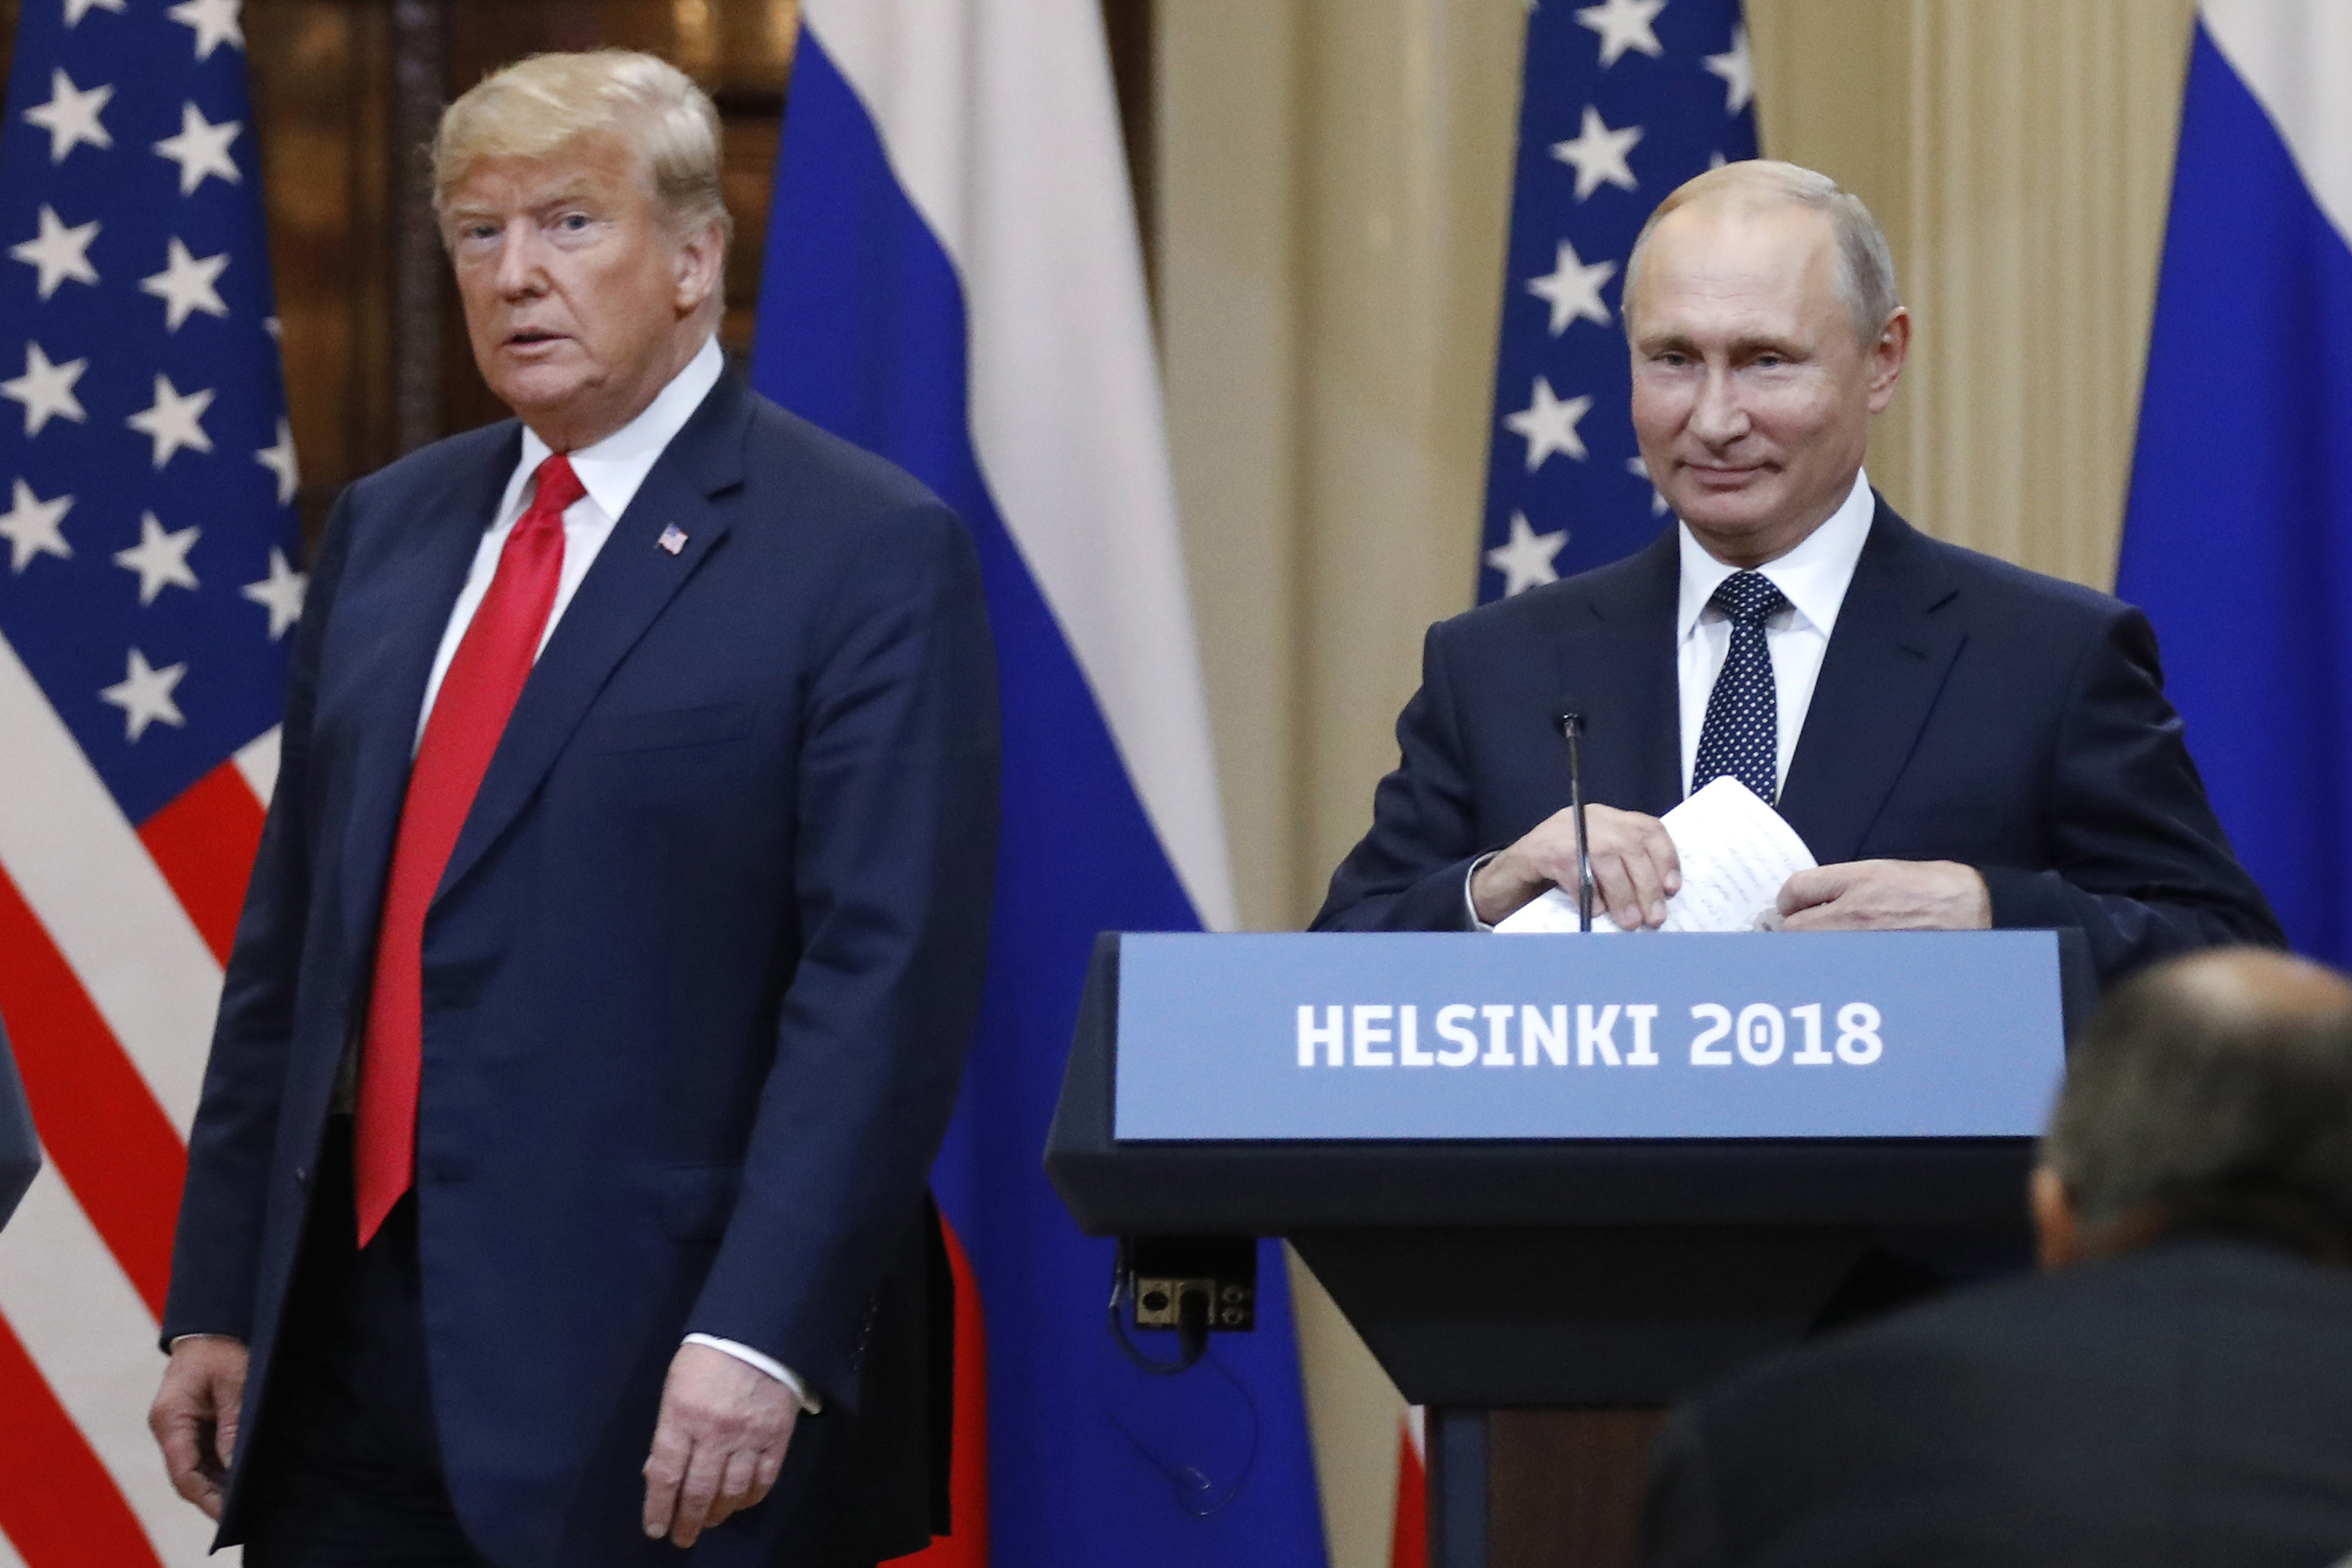 FILE - U.S. President Donald Trump, left, and Russian President Vladimir Putin arrive for a press conference after their meeting at the Presidential Palace in Helsinki, Finland, July 16, 2018.